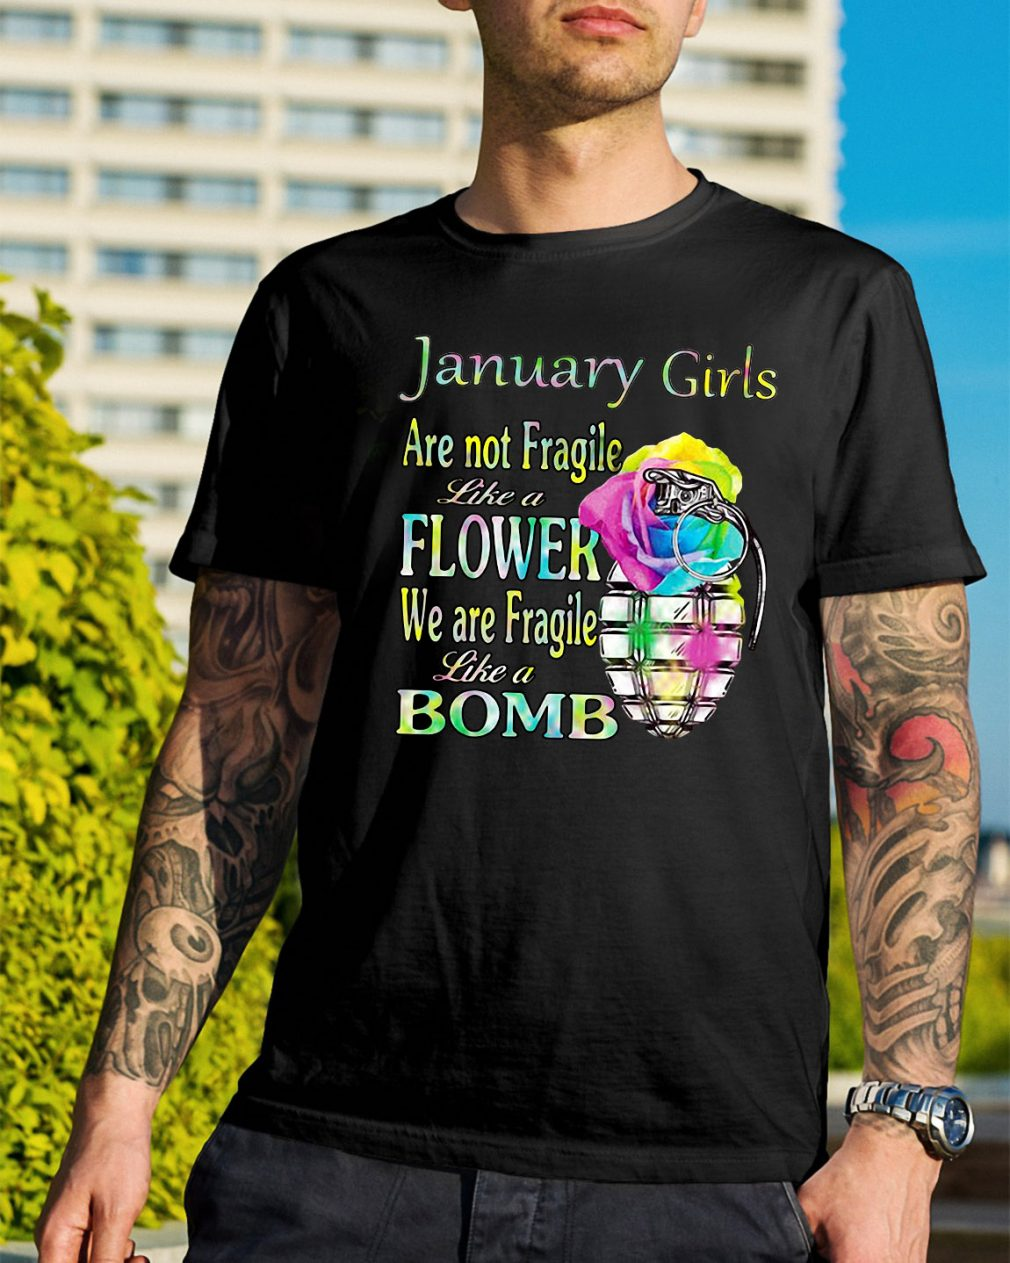 January girls are not Fragile like a flower we are Fragile like a bomb shirt